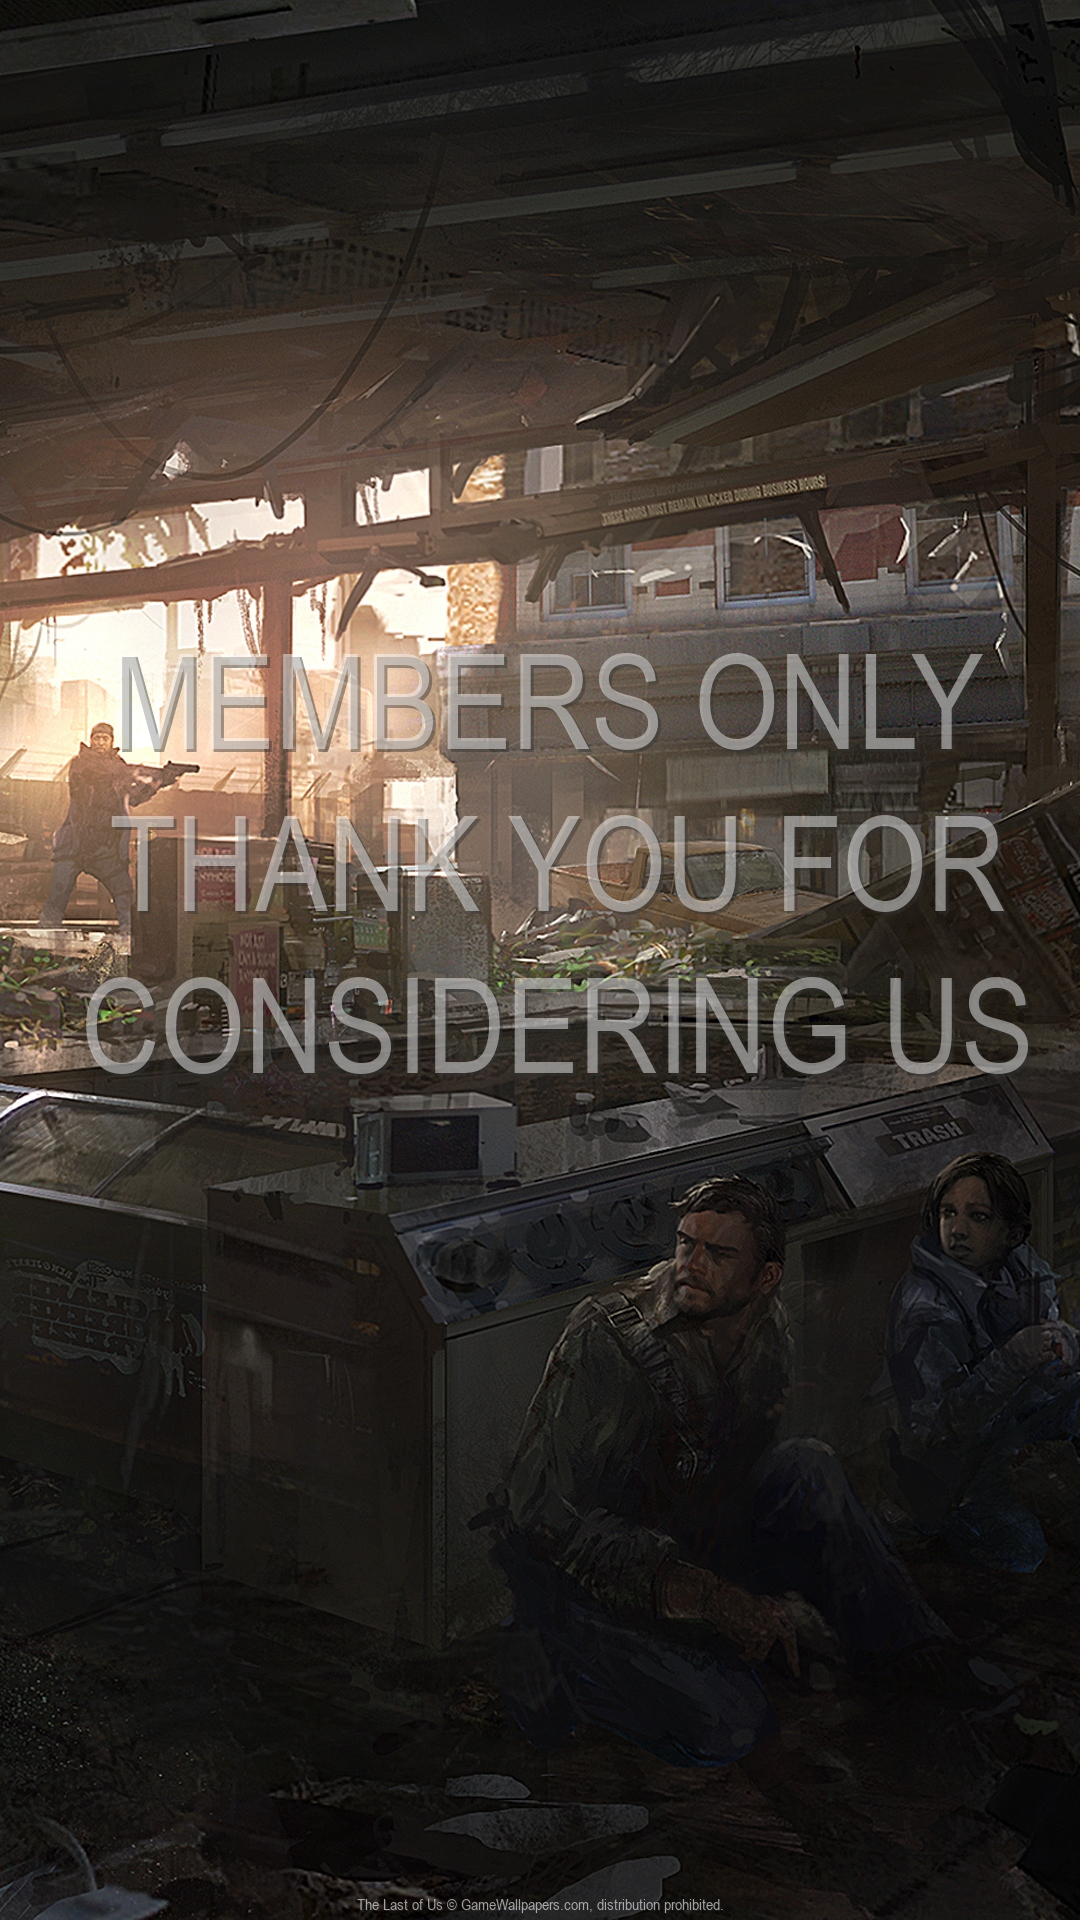 The Last of Us 1920x1080 Mobile wallpaper or background 18